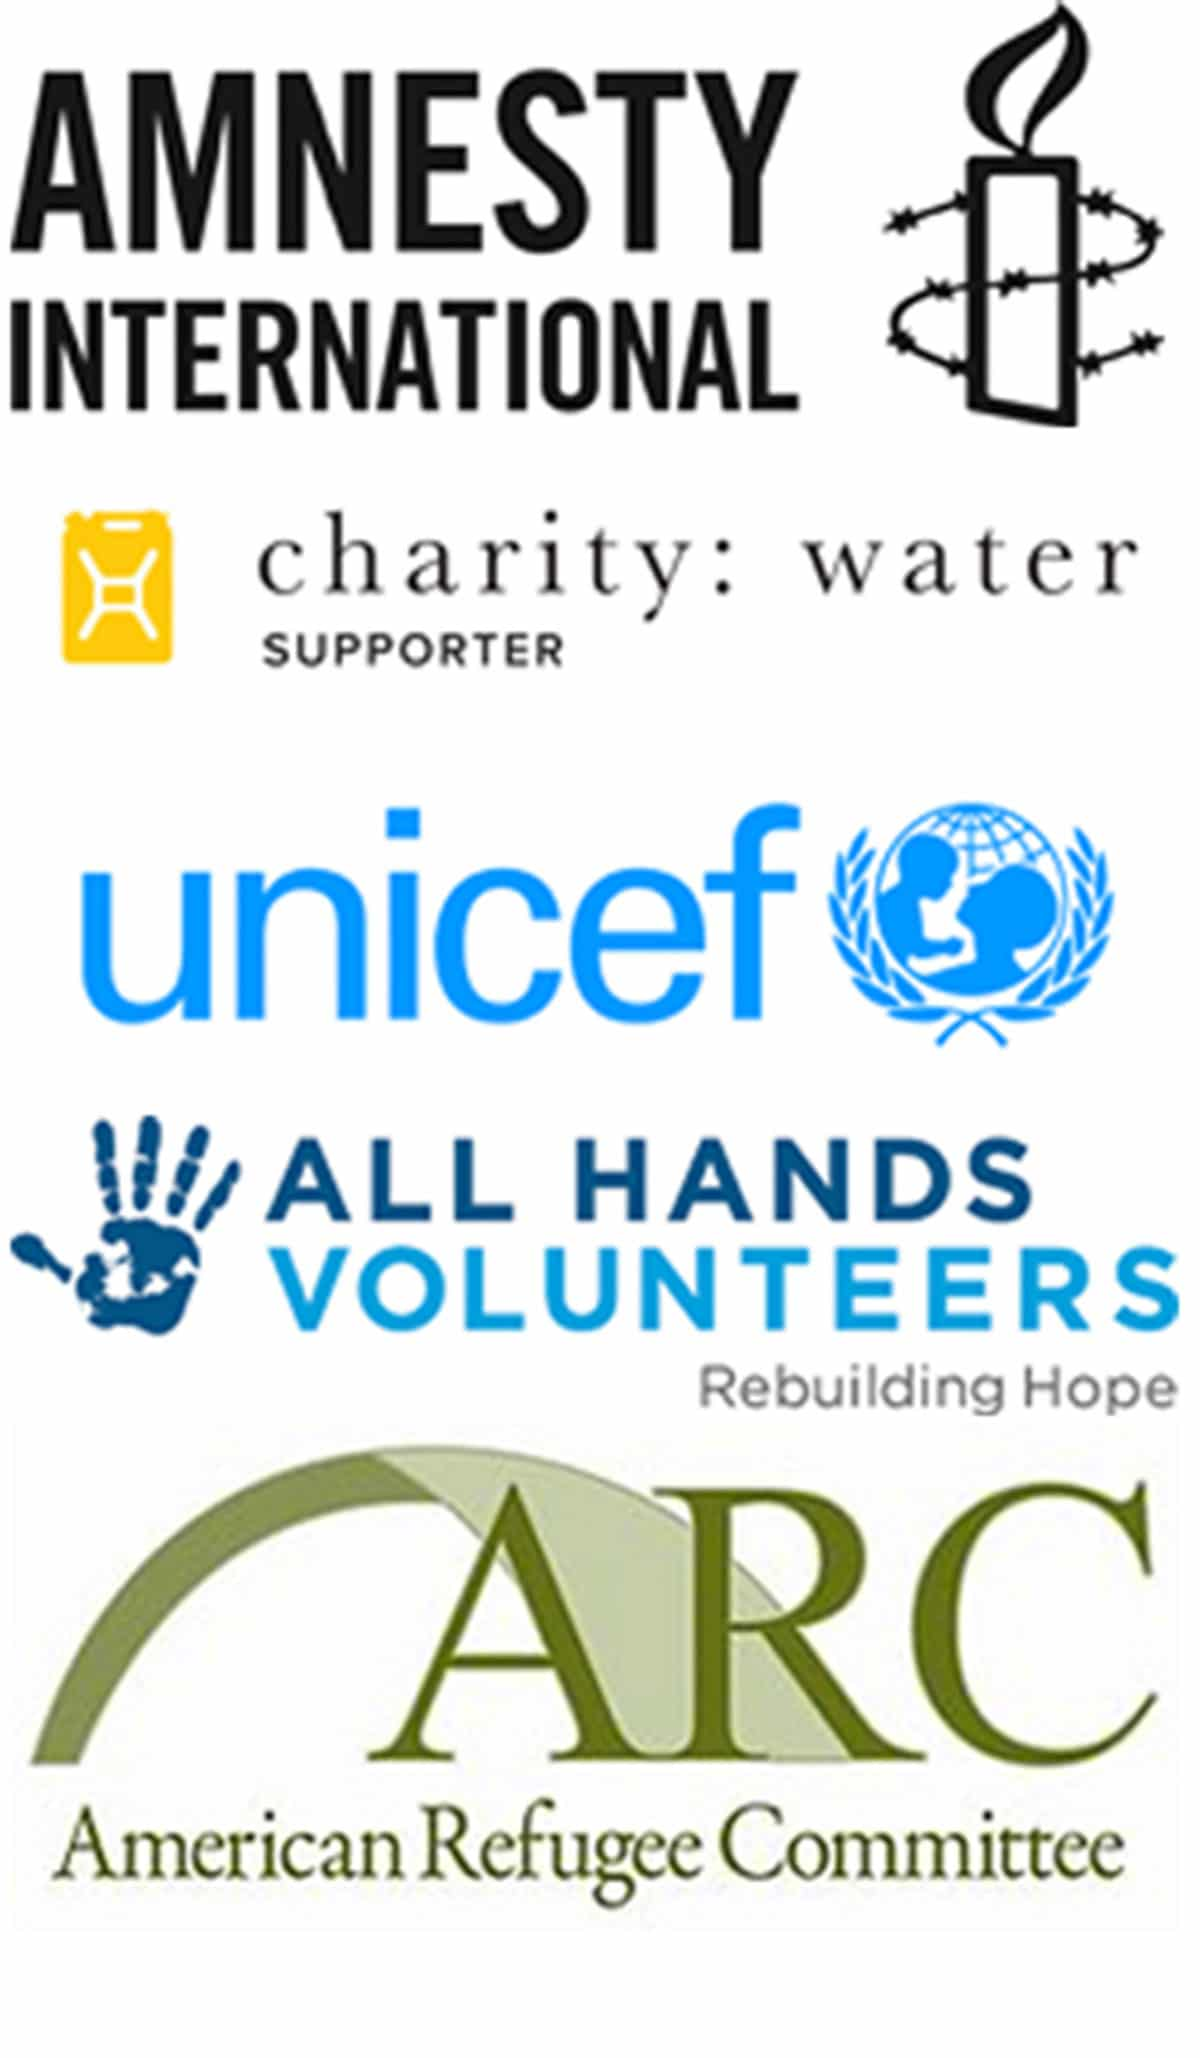 International Charities